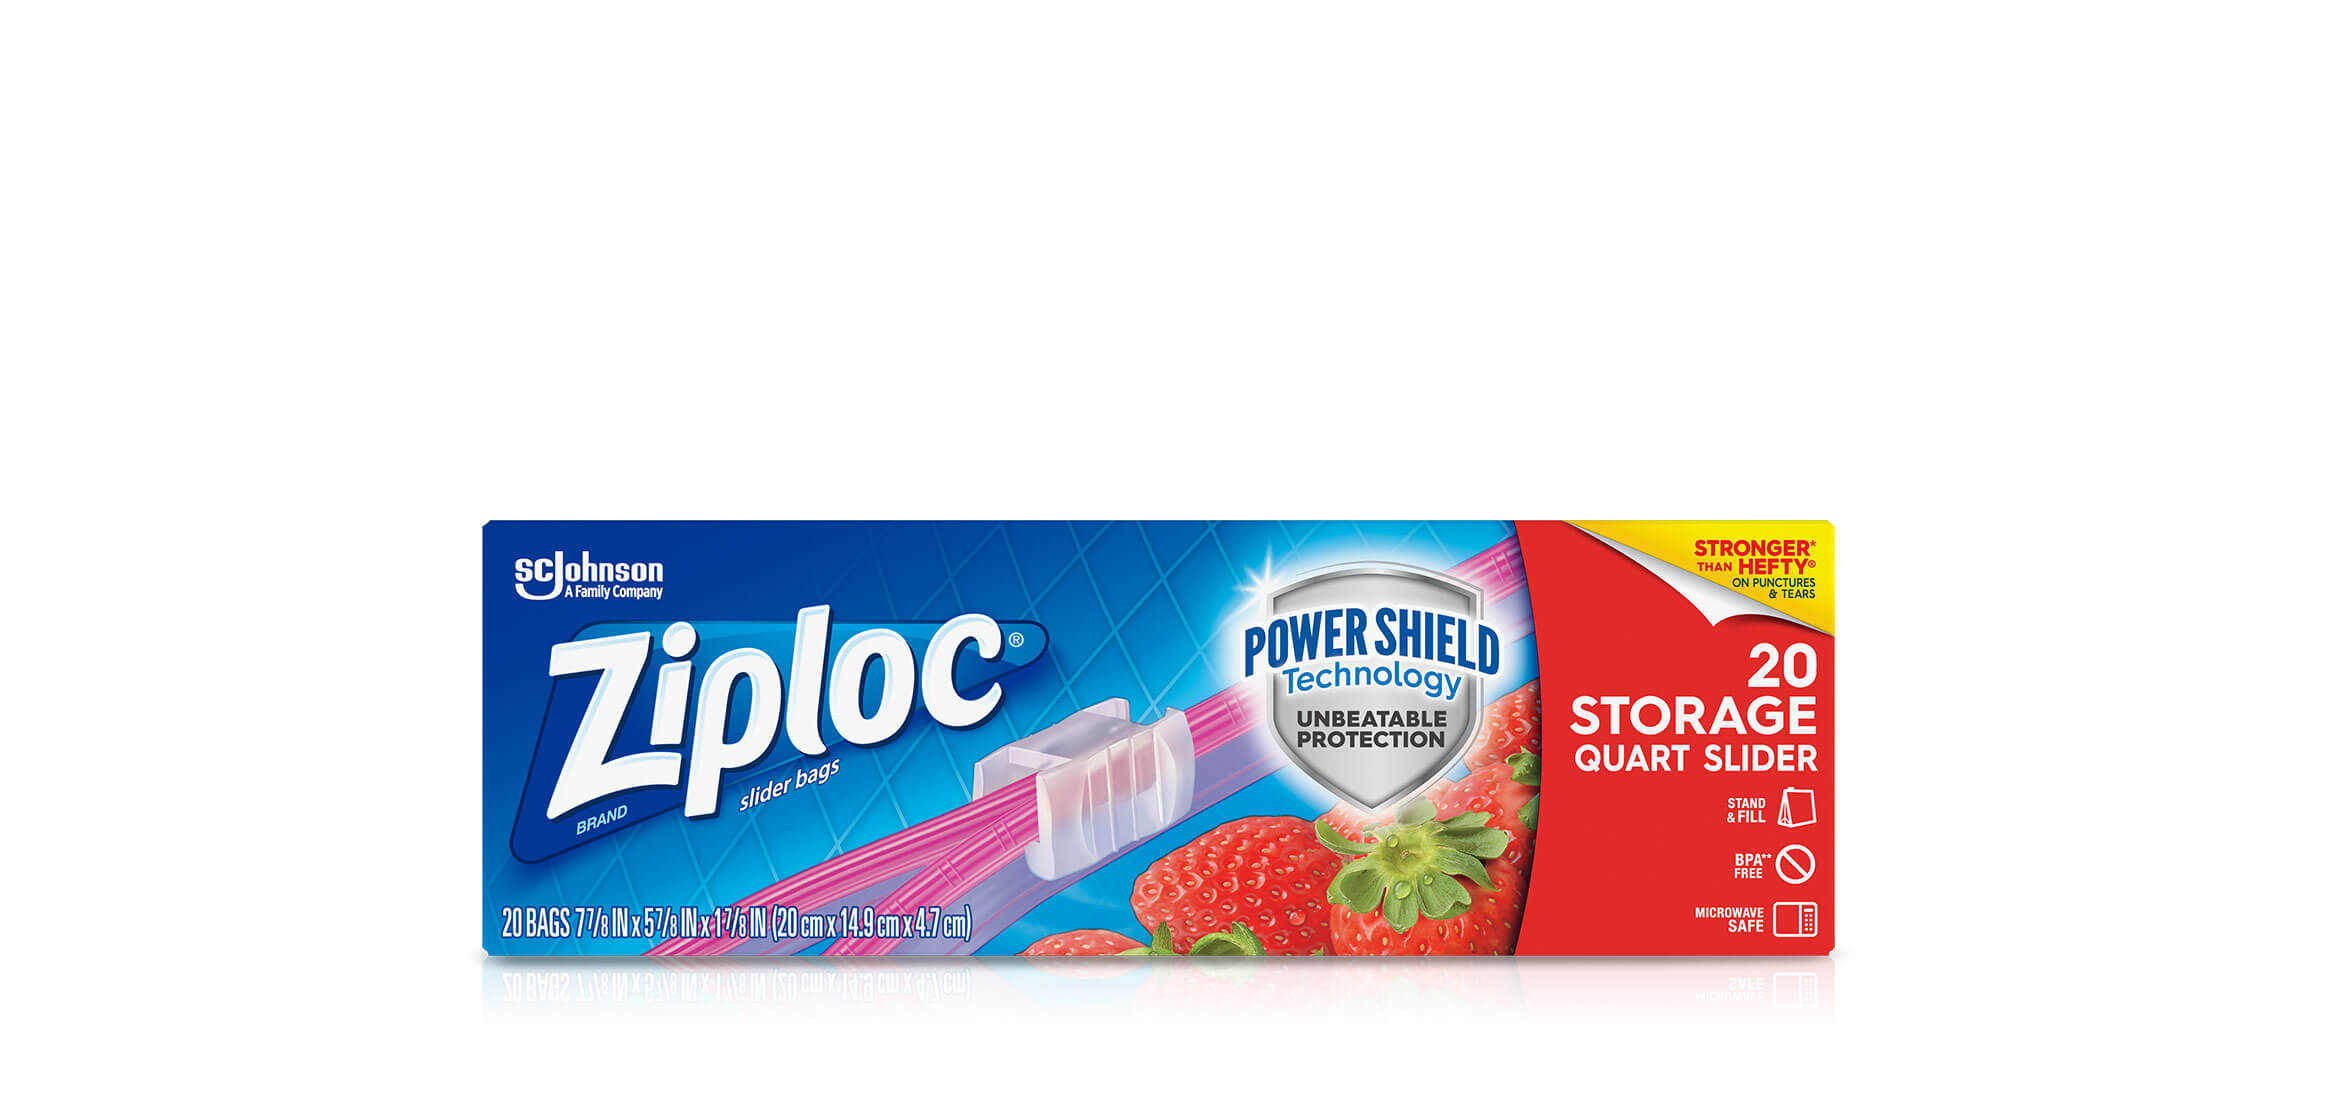 Lots Of Ziploc® Brand Products For All Your Storage & Organization Needs on I Heart Publix 3